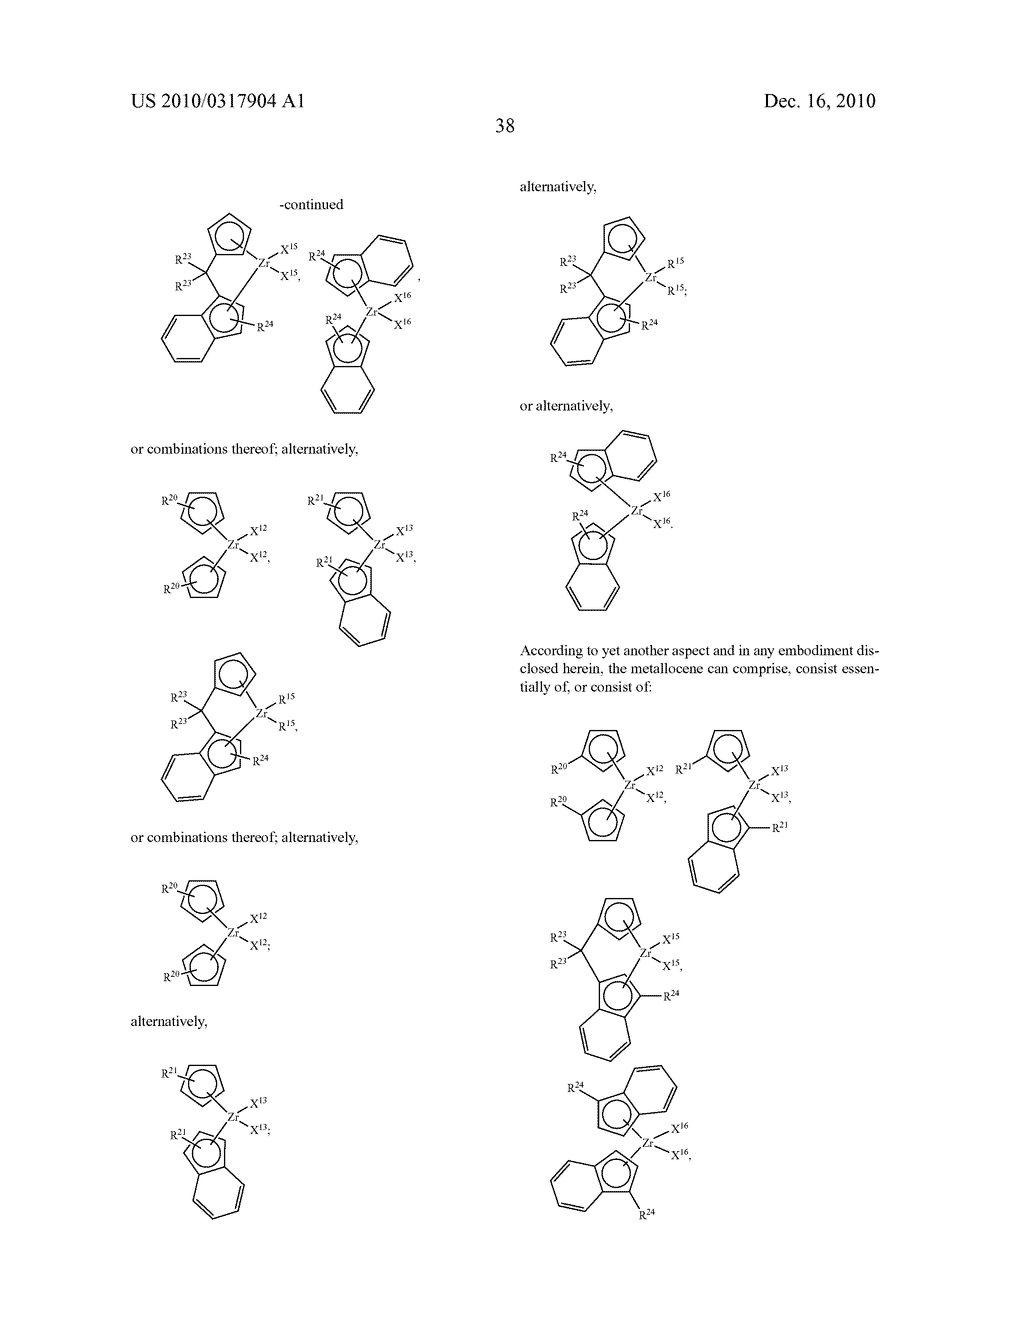 OLIGOMERIZATION OF ALPHA OLEFINS USING METALLOCENE-SSA CATALYST SYSTEMS AND USE OF THE RESULTANT POLYALPHAOLEFINS TO PREPARE LUBRICANT BLENDS - diagram, schematic, and image 50